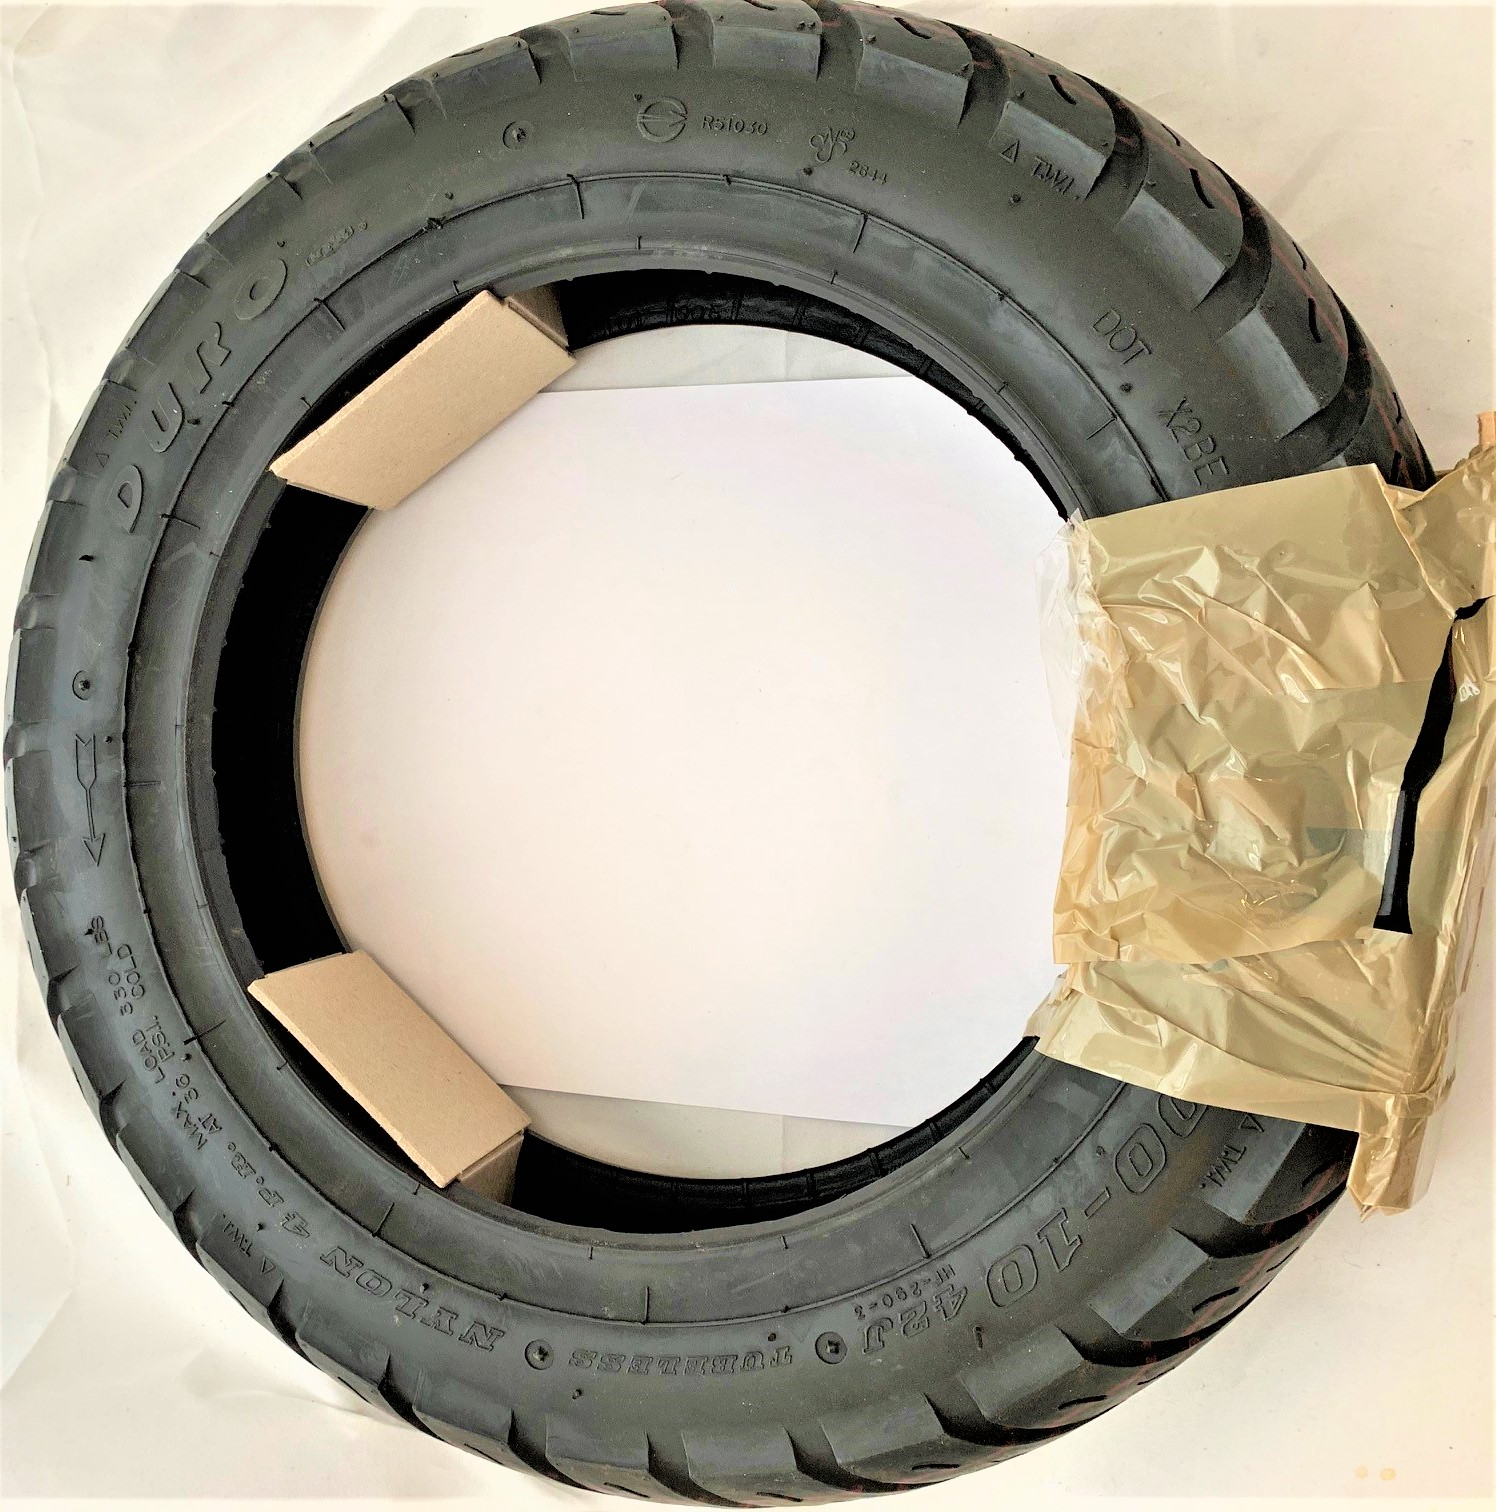 DURO TUBELESS SCOOTER E-BIKE TIRE 3.00-10 3.00x10